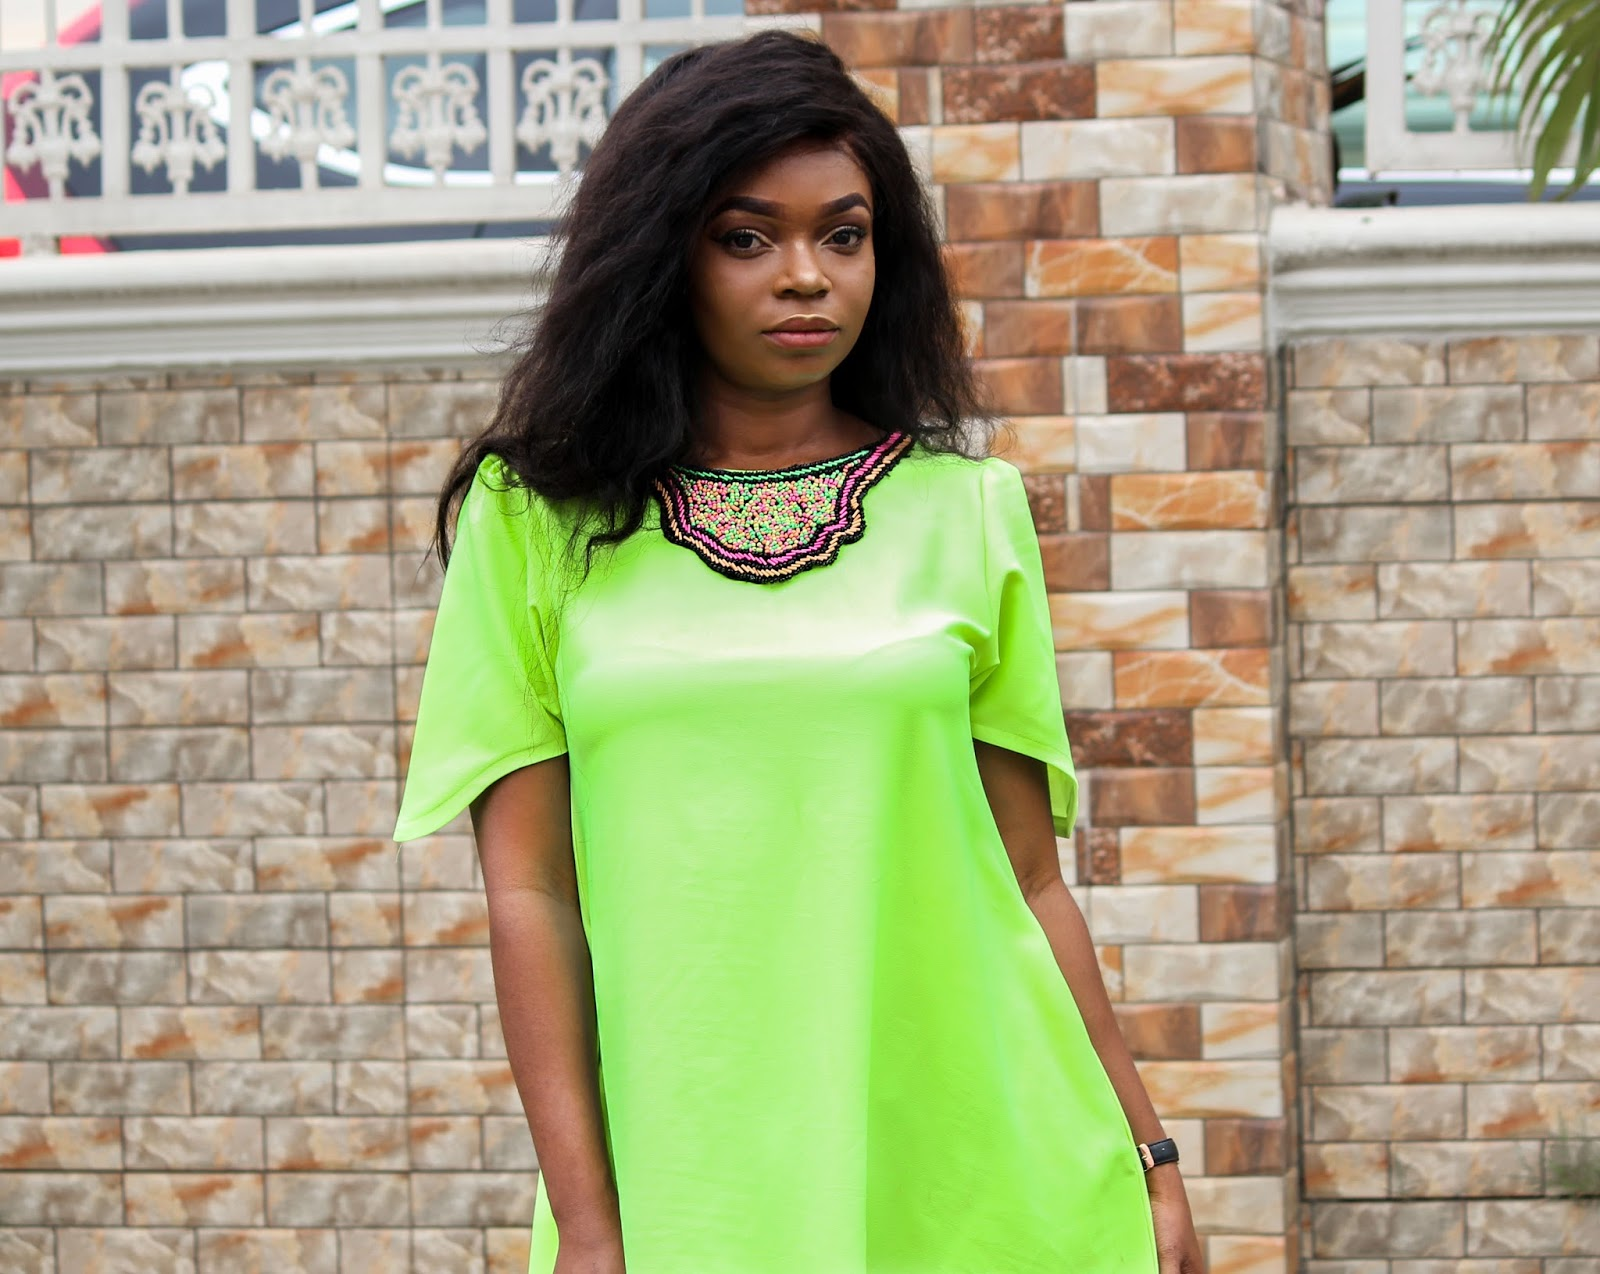 NEON HI-LO SHIFT DRESS - Neon Hi-Lo Shift Dress with Bead Detailing by Porshher